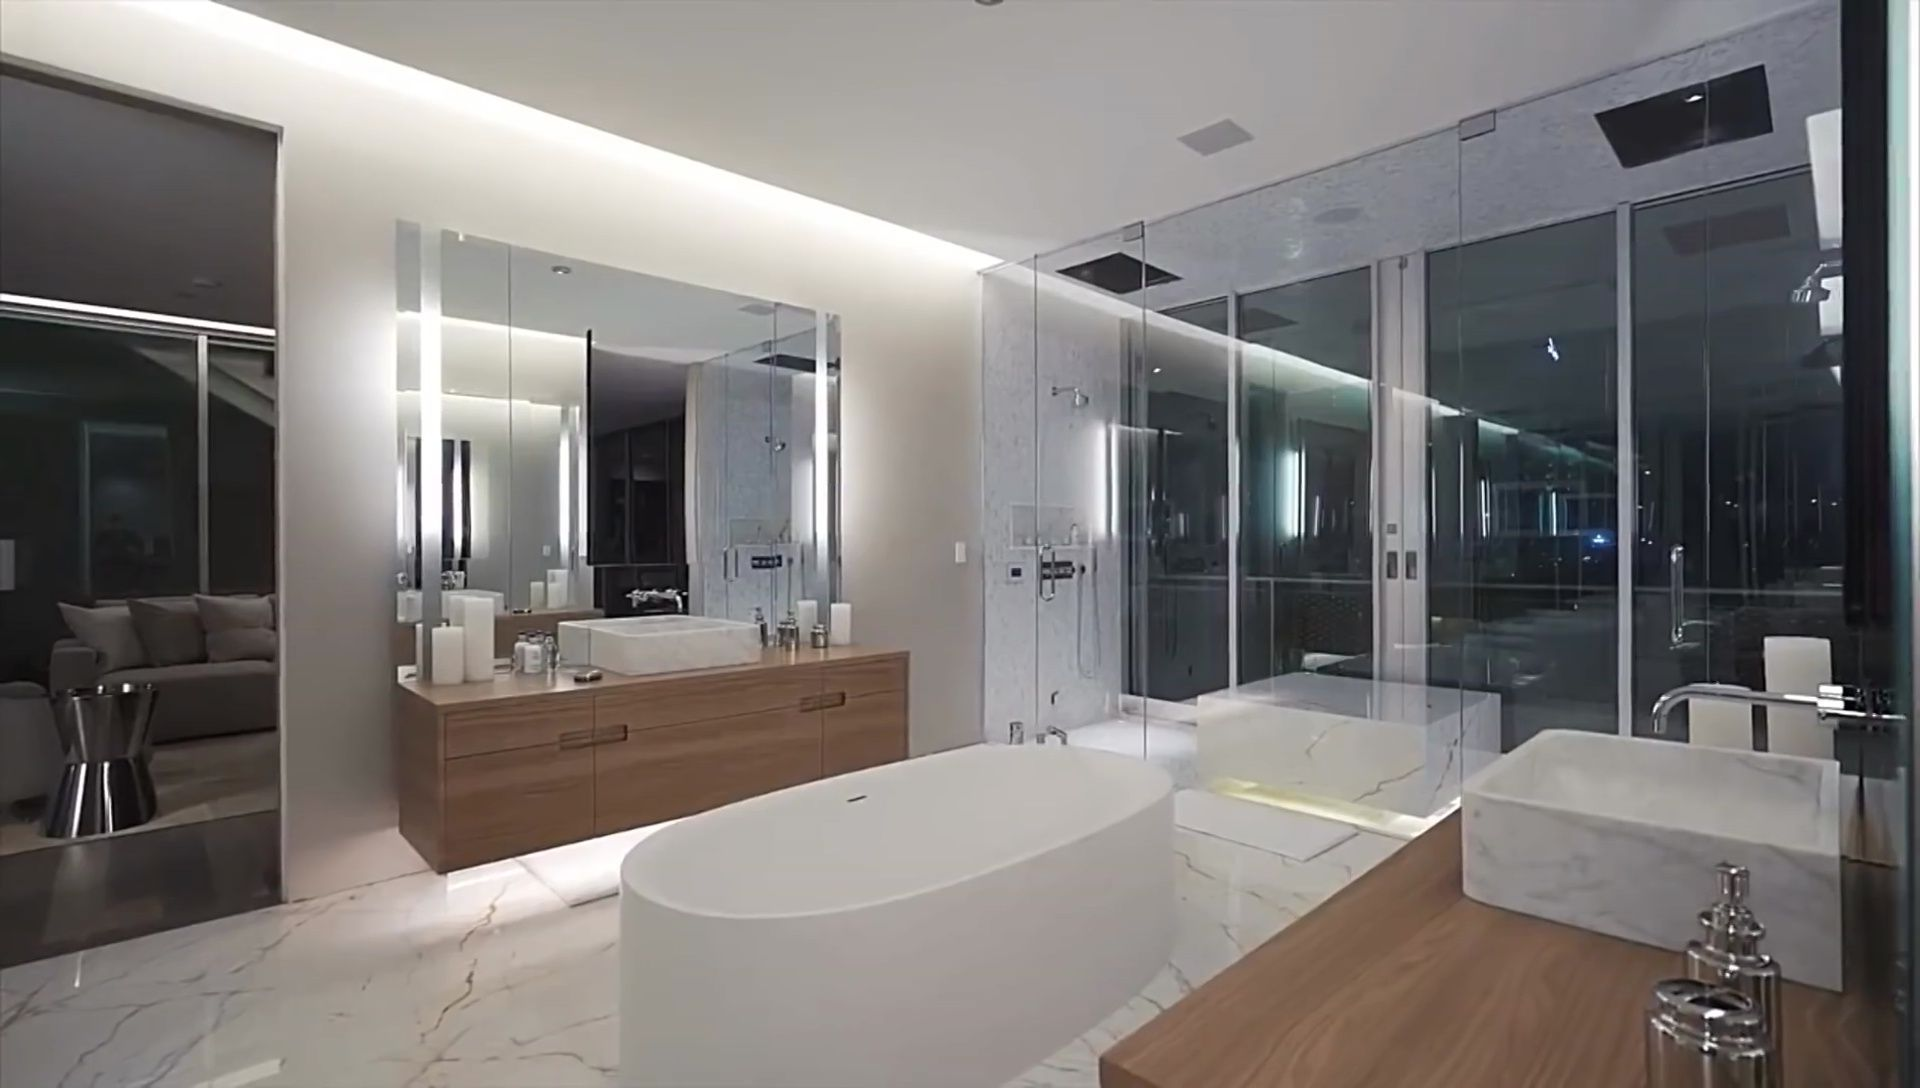 Homedecor Holmbyhills Housestyles Luxuryhomes House